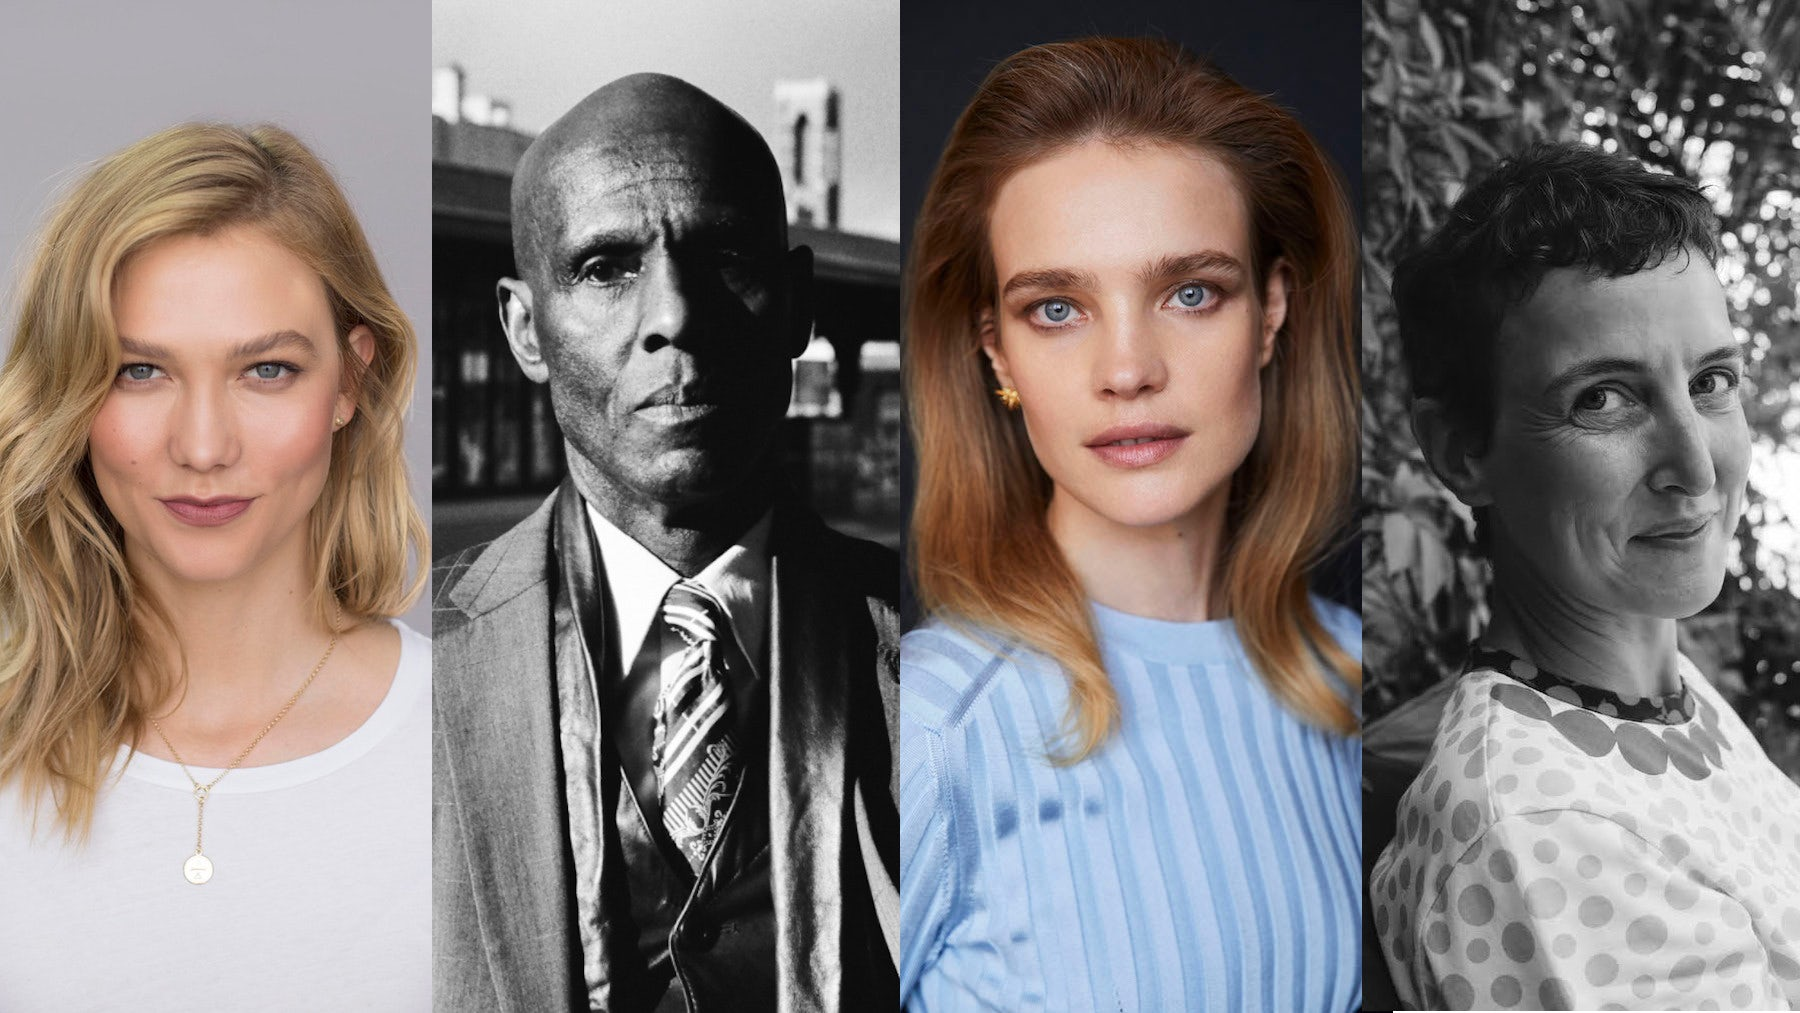 From left: Karlie Kloss, Dapper Dan, Natalia Vodianova, Sarah Andelman | Sources: Courtesy